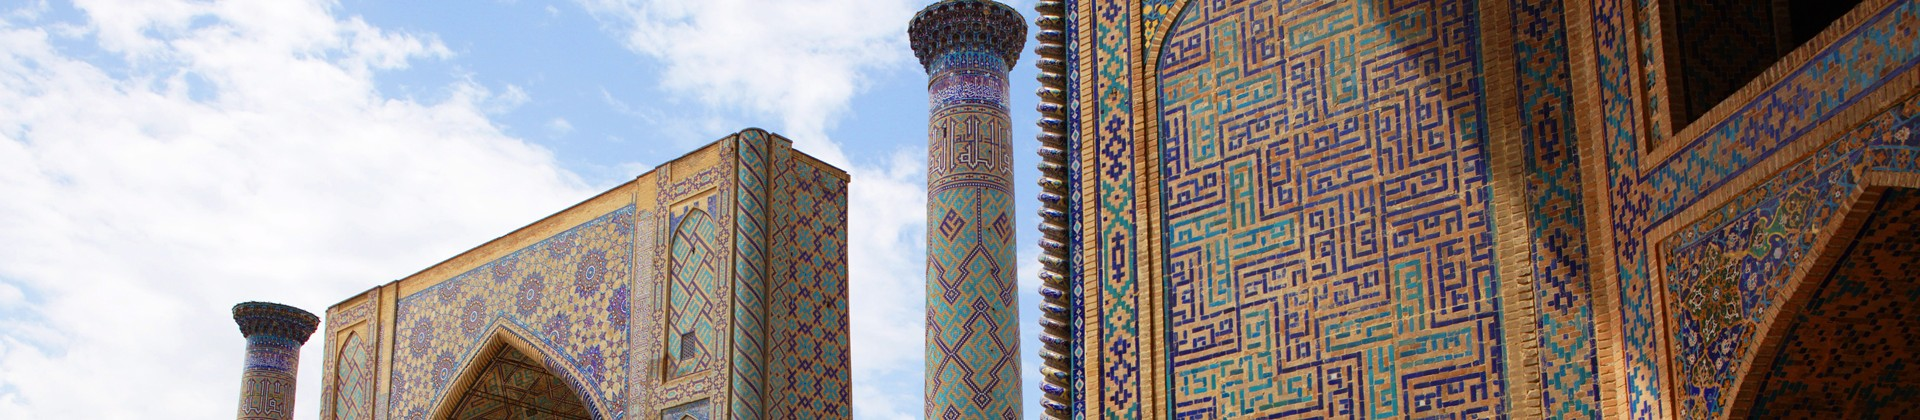 The Pearls of Uzbekistan (Lux) - 1